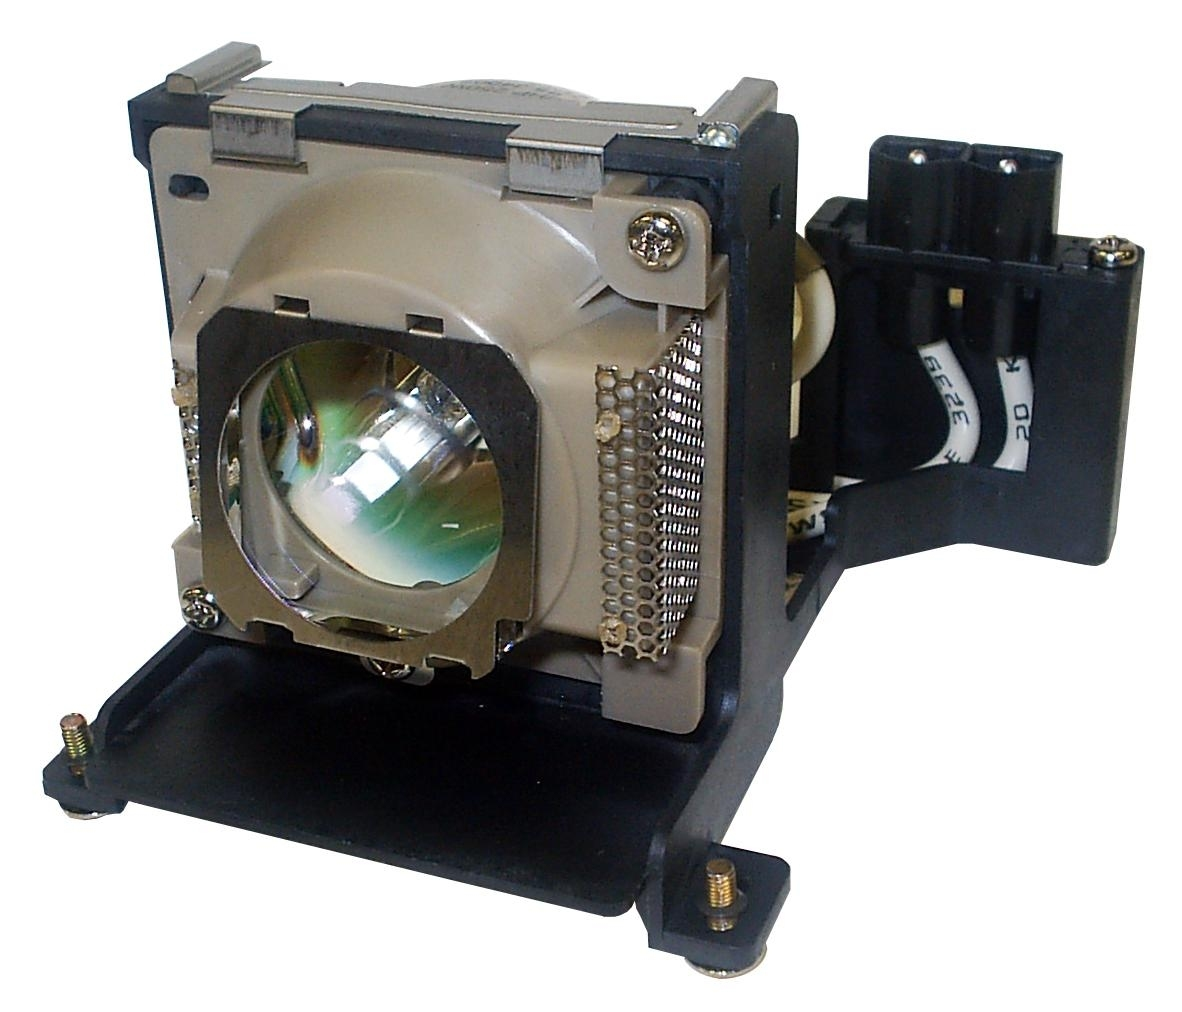 Original Lamp for projector BENQ DX650